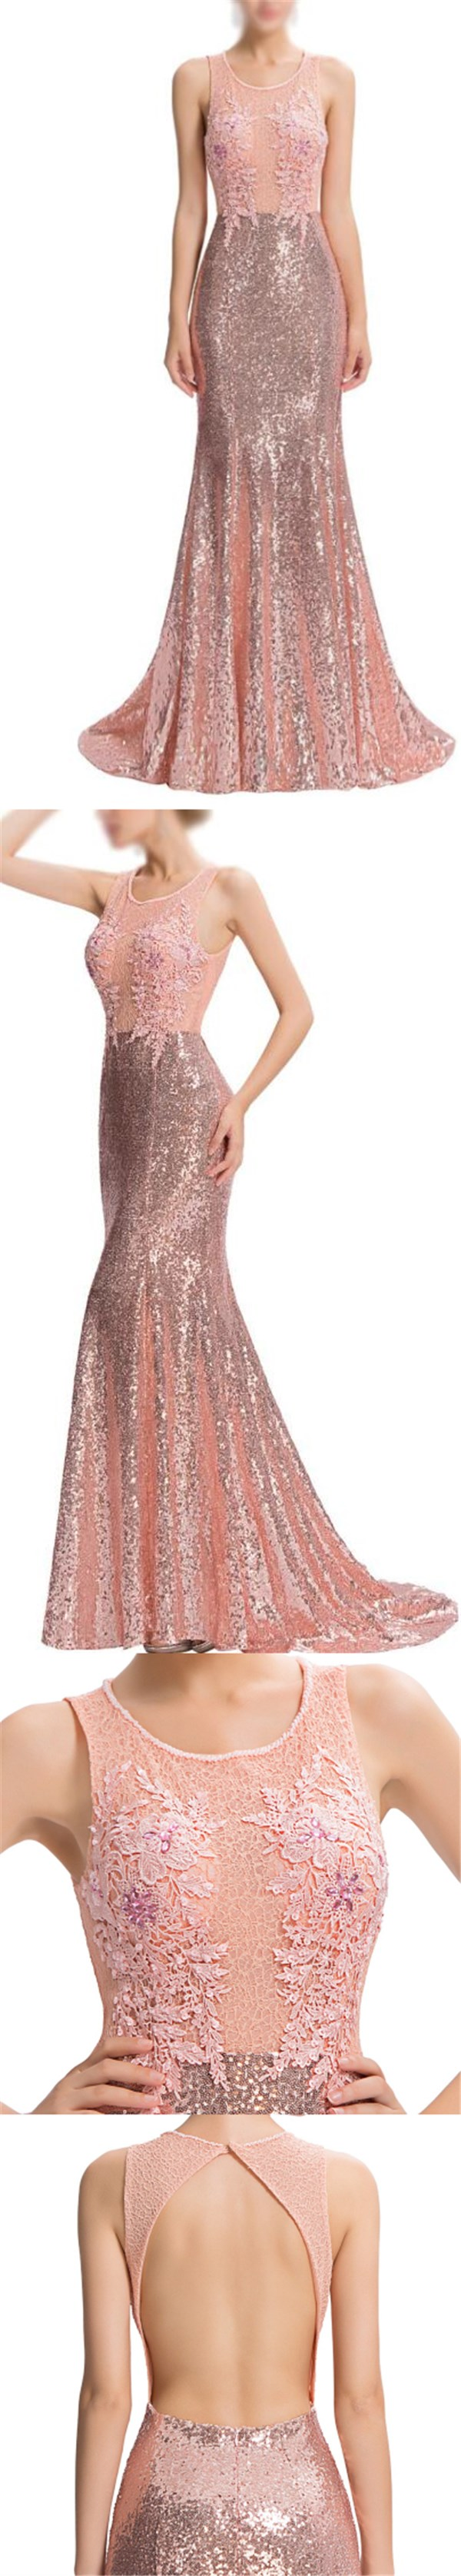 2017 Rose Gold Sequin Cheap Open Back Mermaid Lace Prom Dress ...